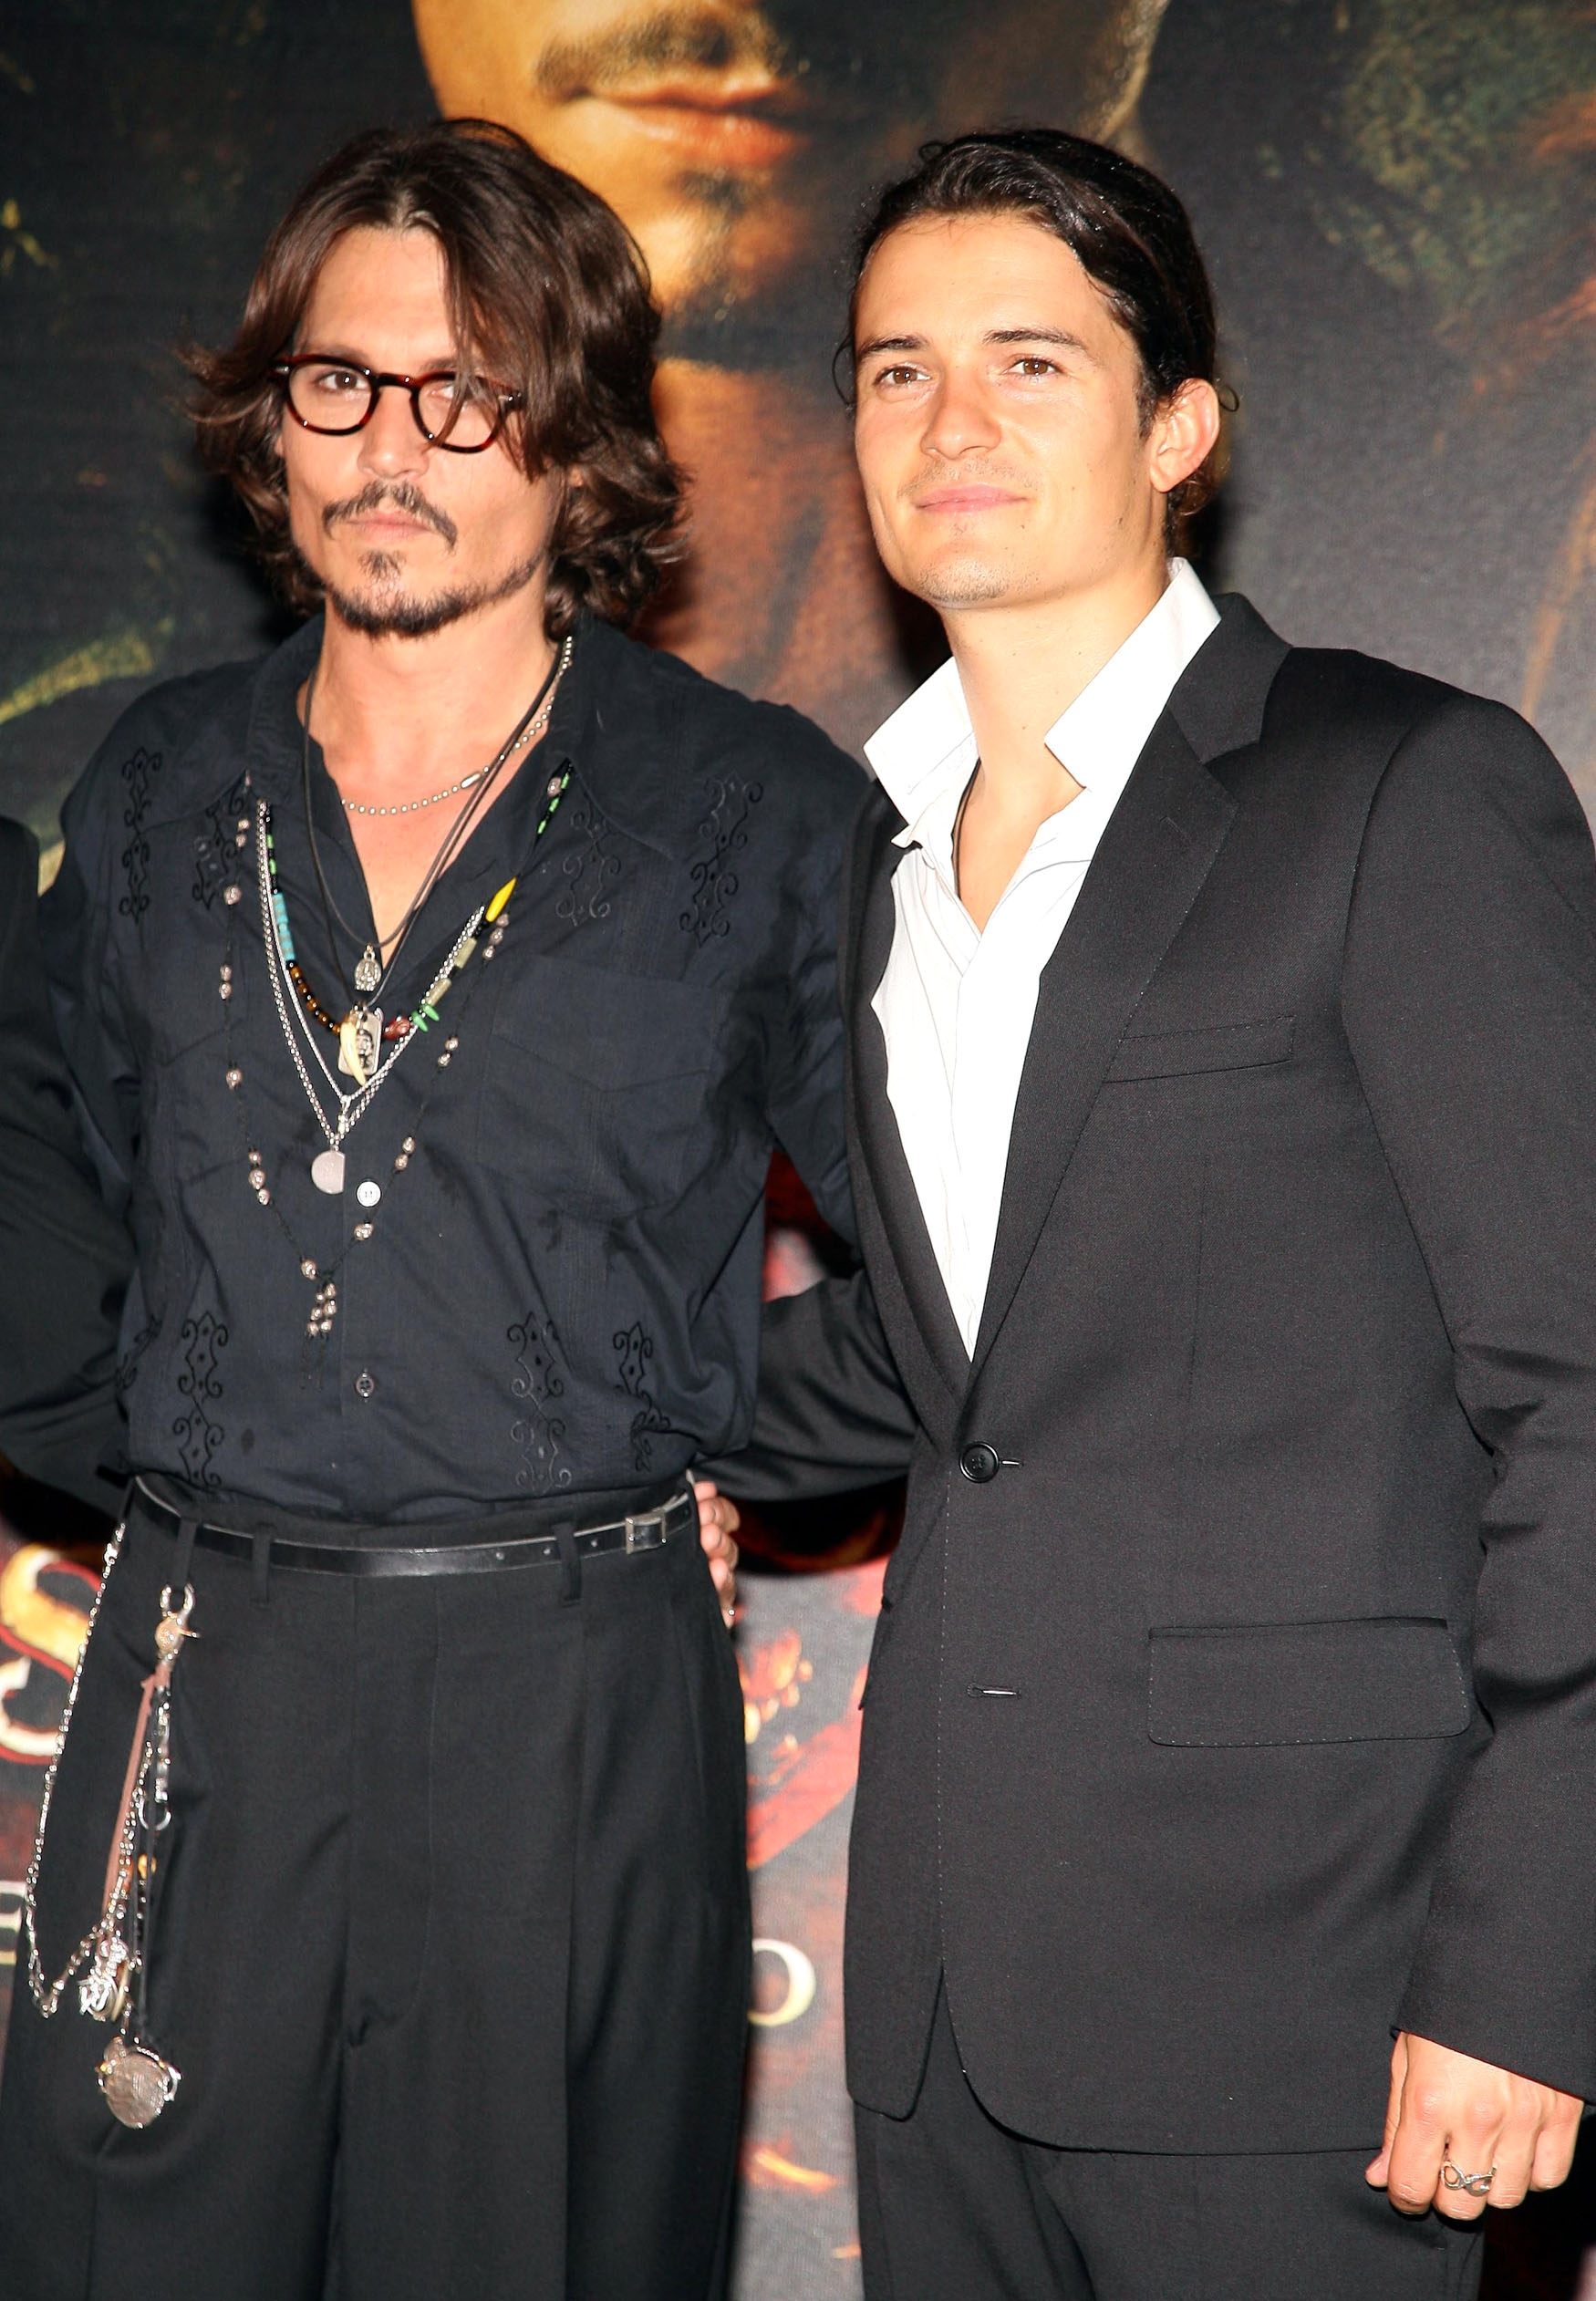 Pictures of johnny depp and orlando bloom 16 best Wetzelland images on Pinterest Biking, Harley davidson and